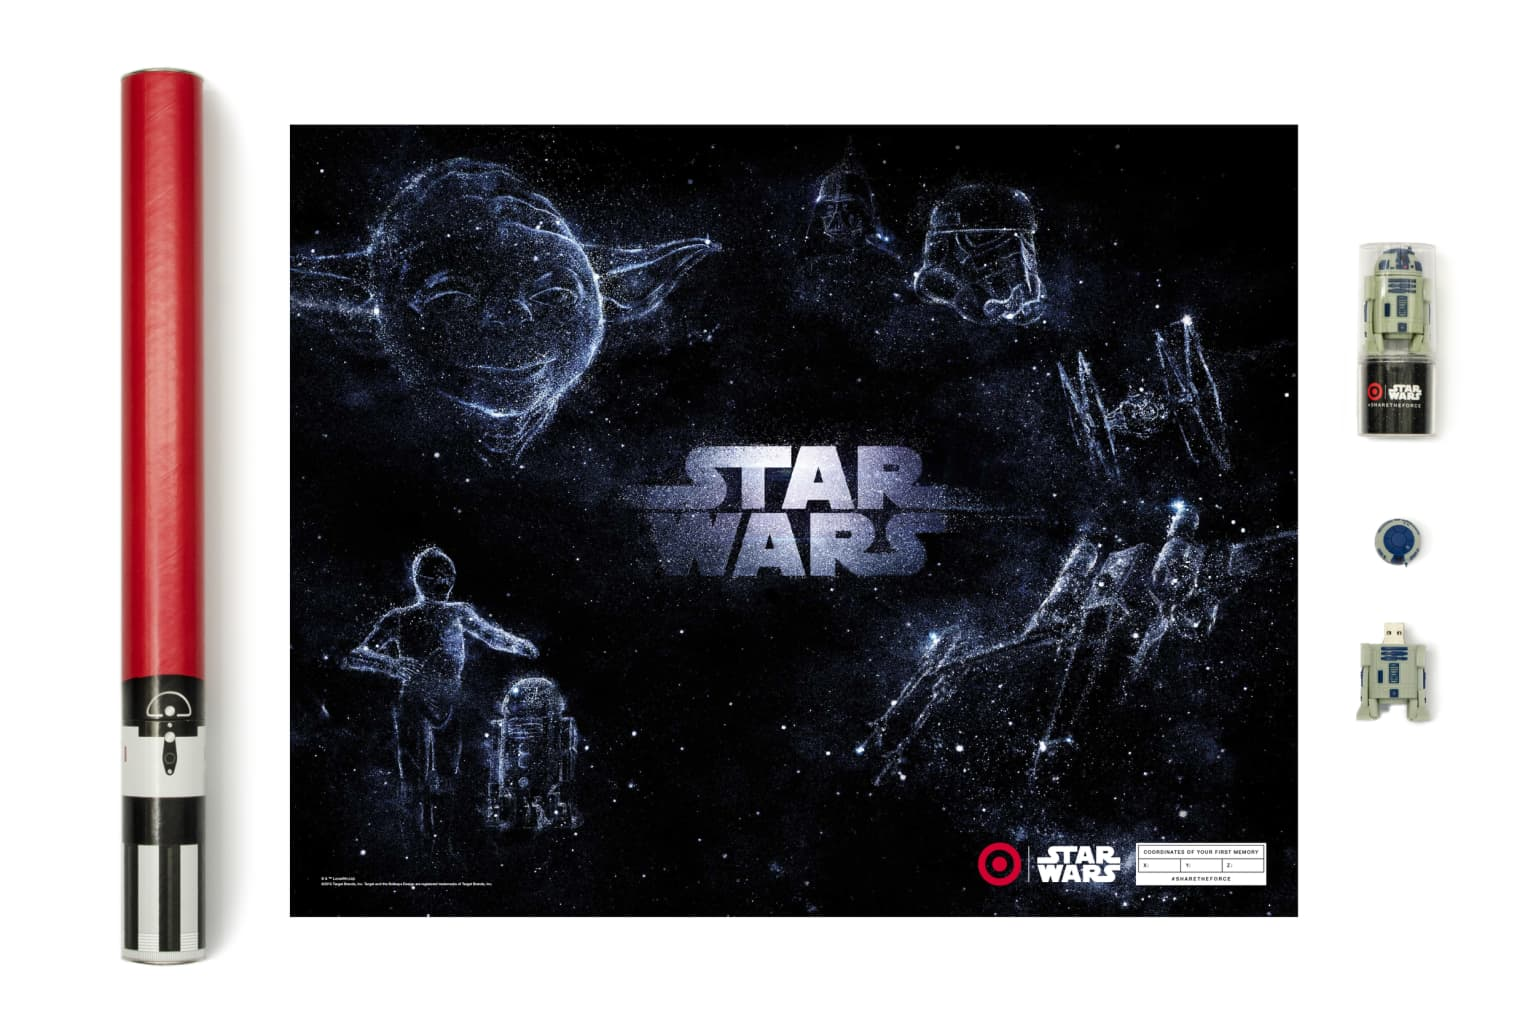 Share the Force   Target & Star Wars